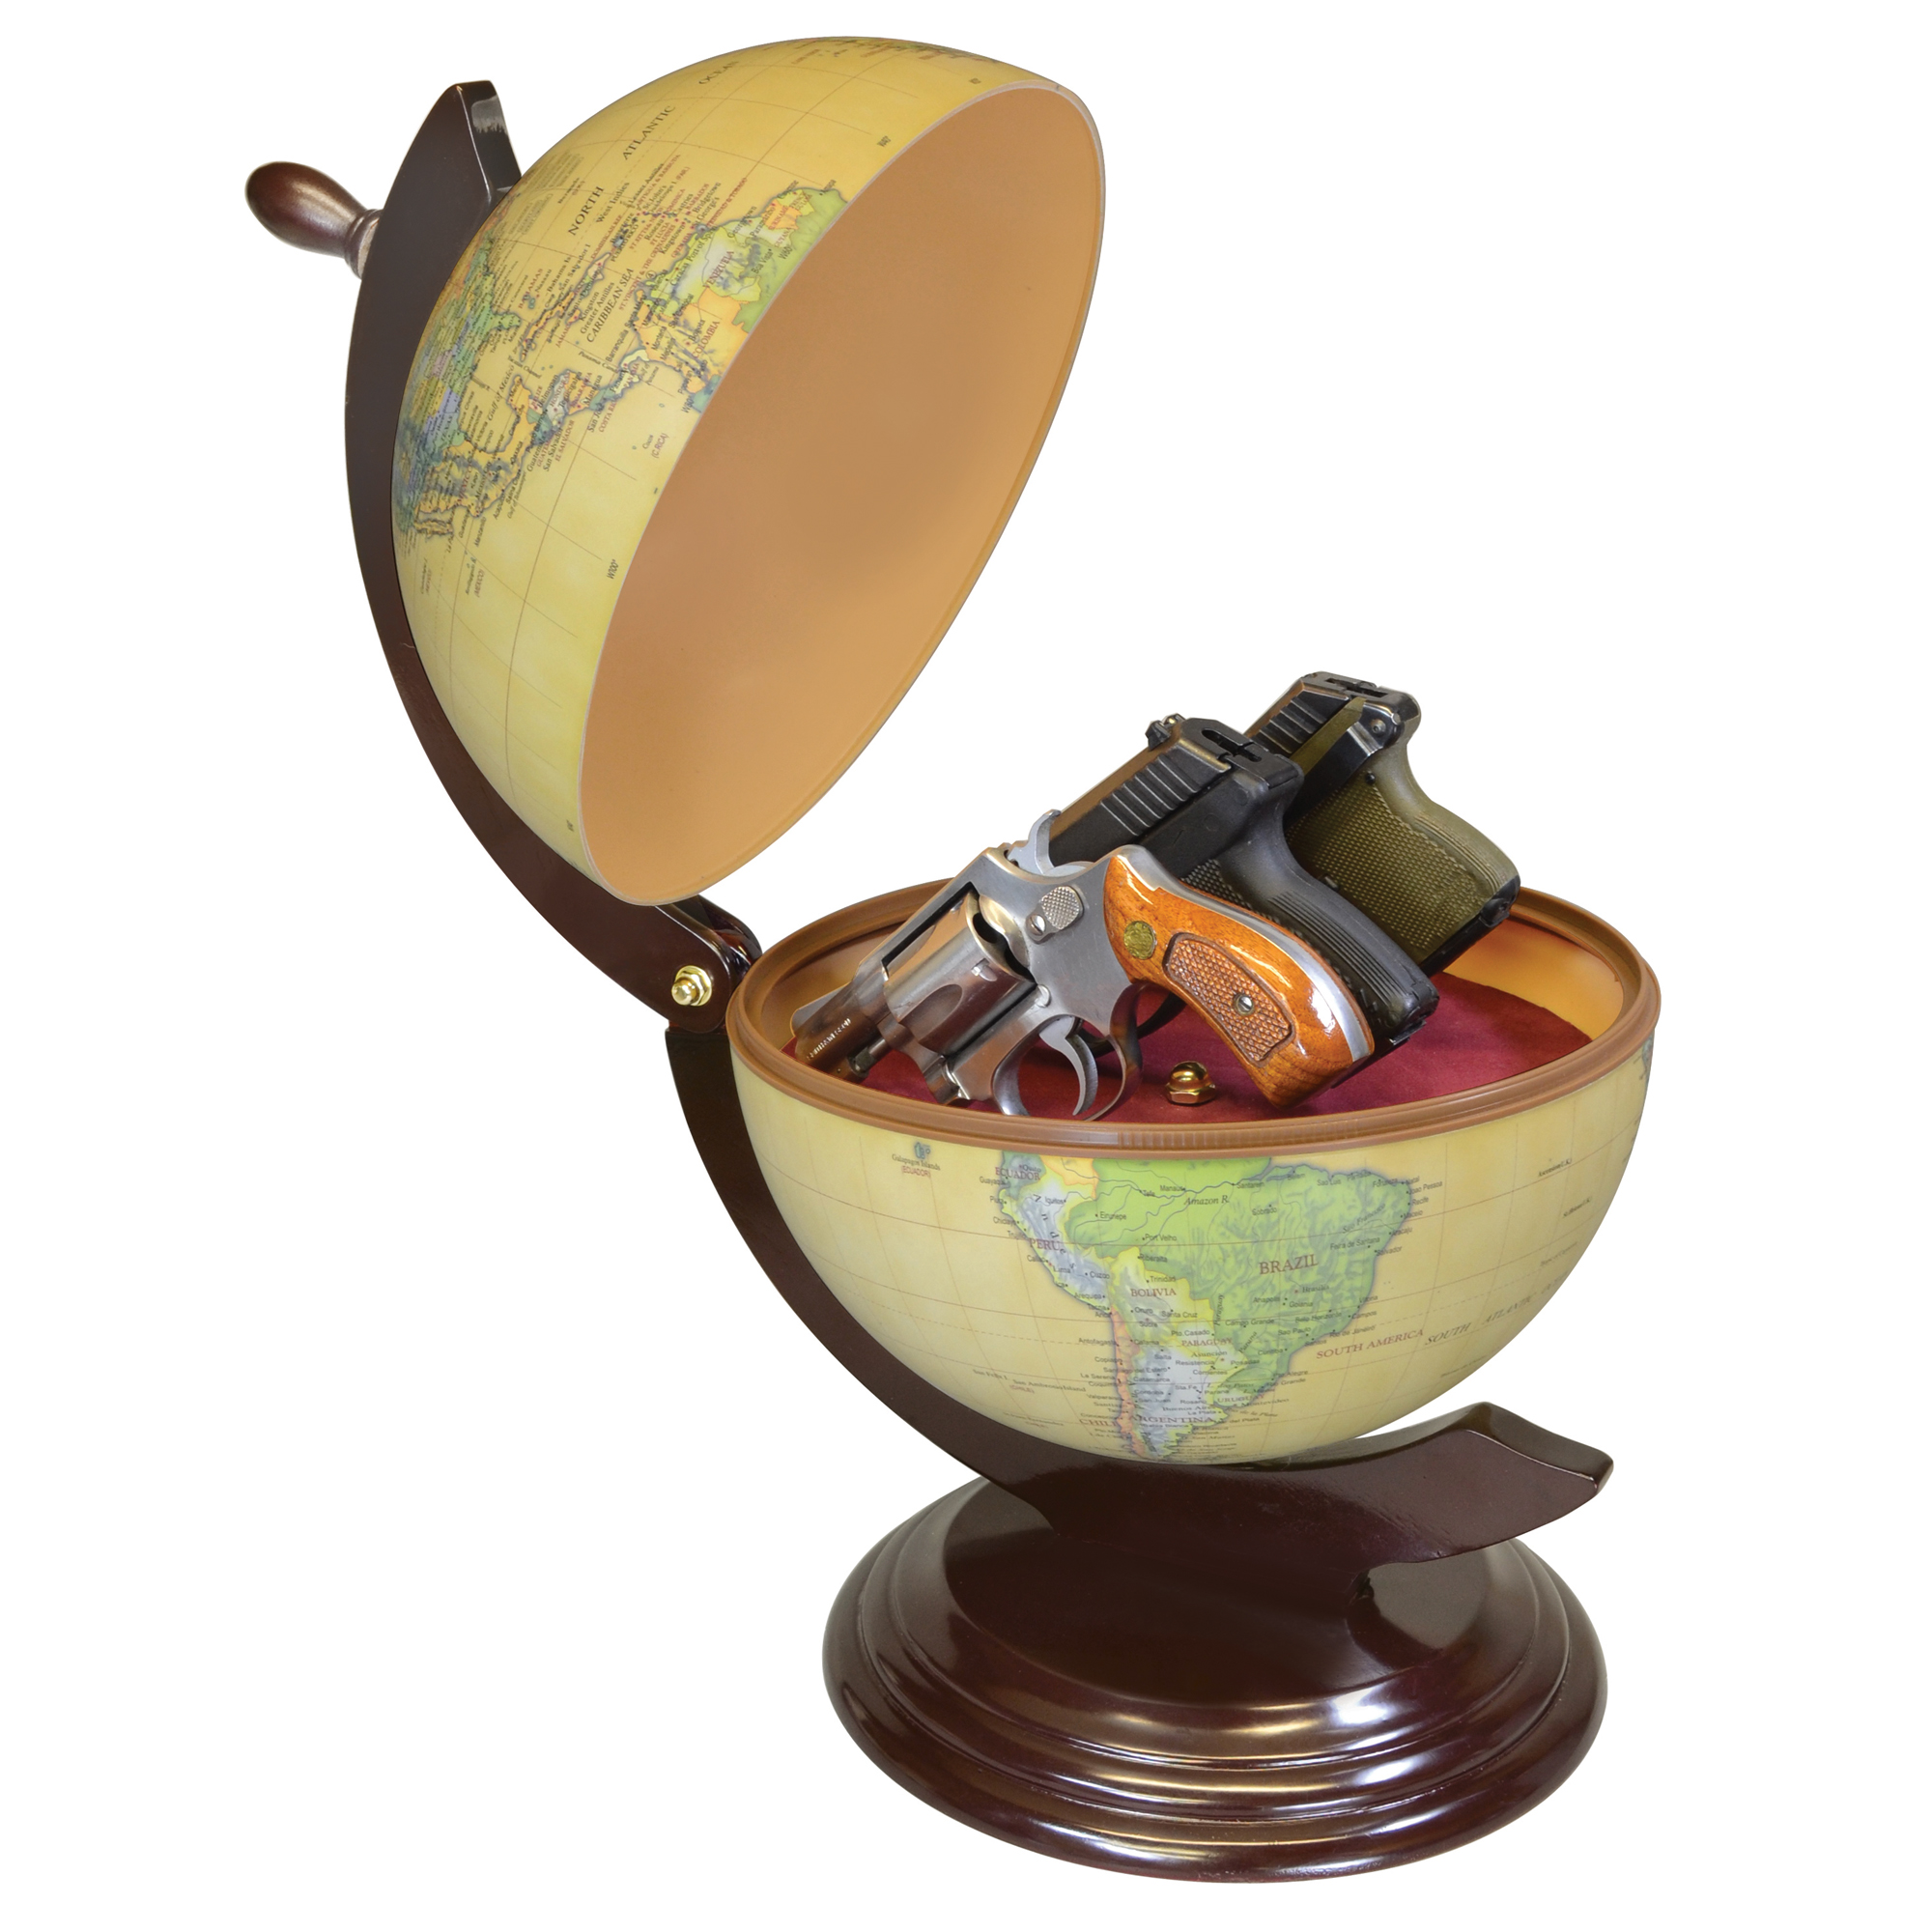 """The Concealment Gun Globe features 3 adjustable vinyl-coated rods to hold your gun securely. It has room for magazines or other valuables and an Inside diameter of 9 1/4"""" holds up to 3 small-medium handguns."""